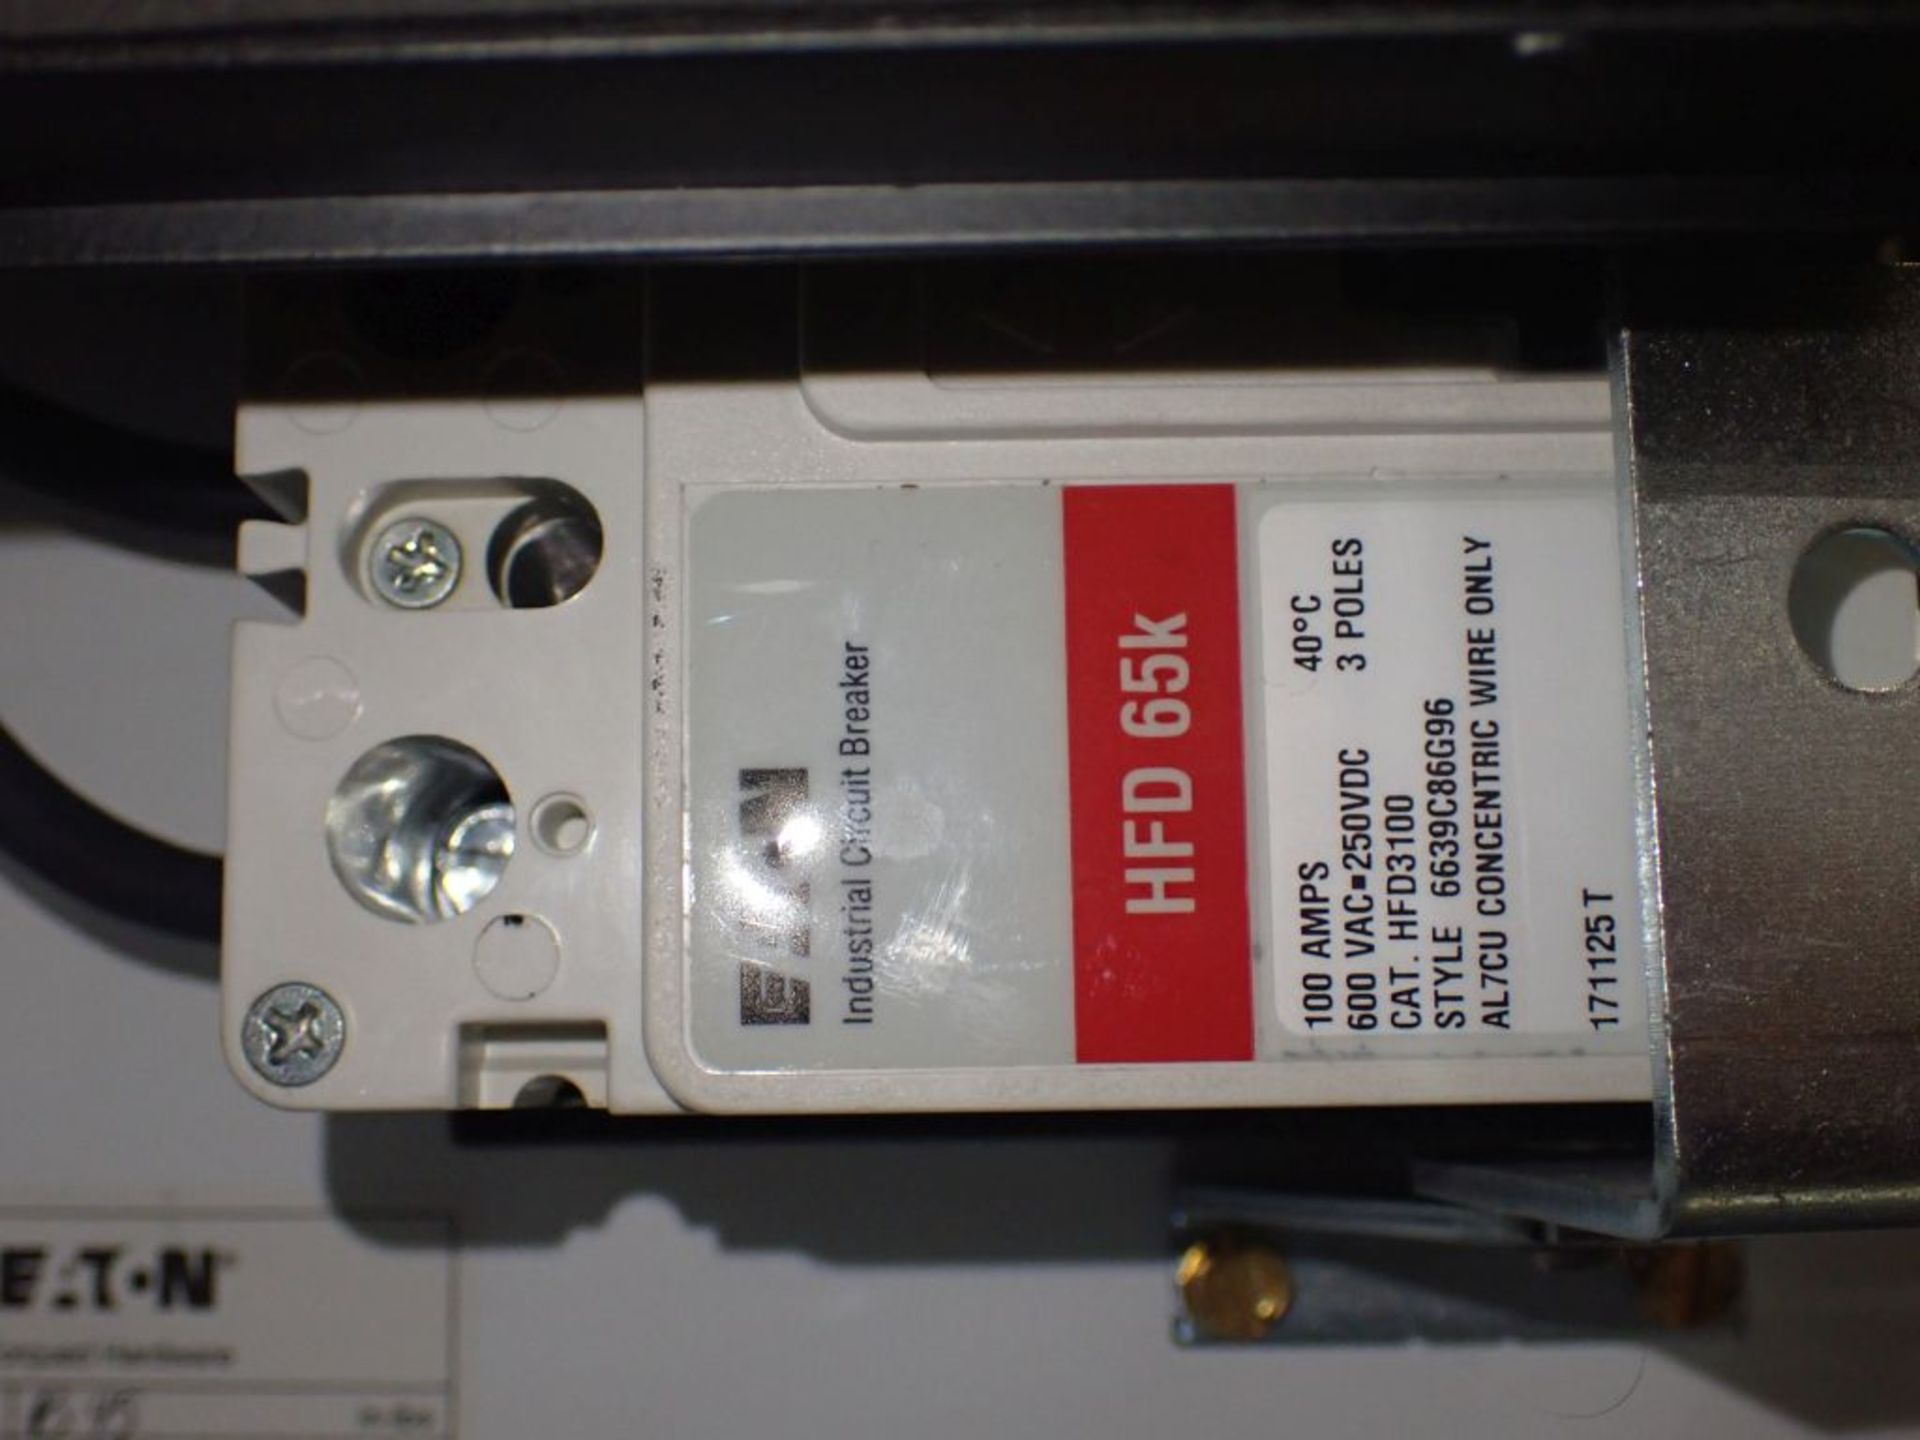 Eaton Freedom Flashgard Motor Control Center   (3) F216-15A-10HP; (1) FDRB-125A, with 150A - Image 41 of 57